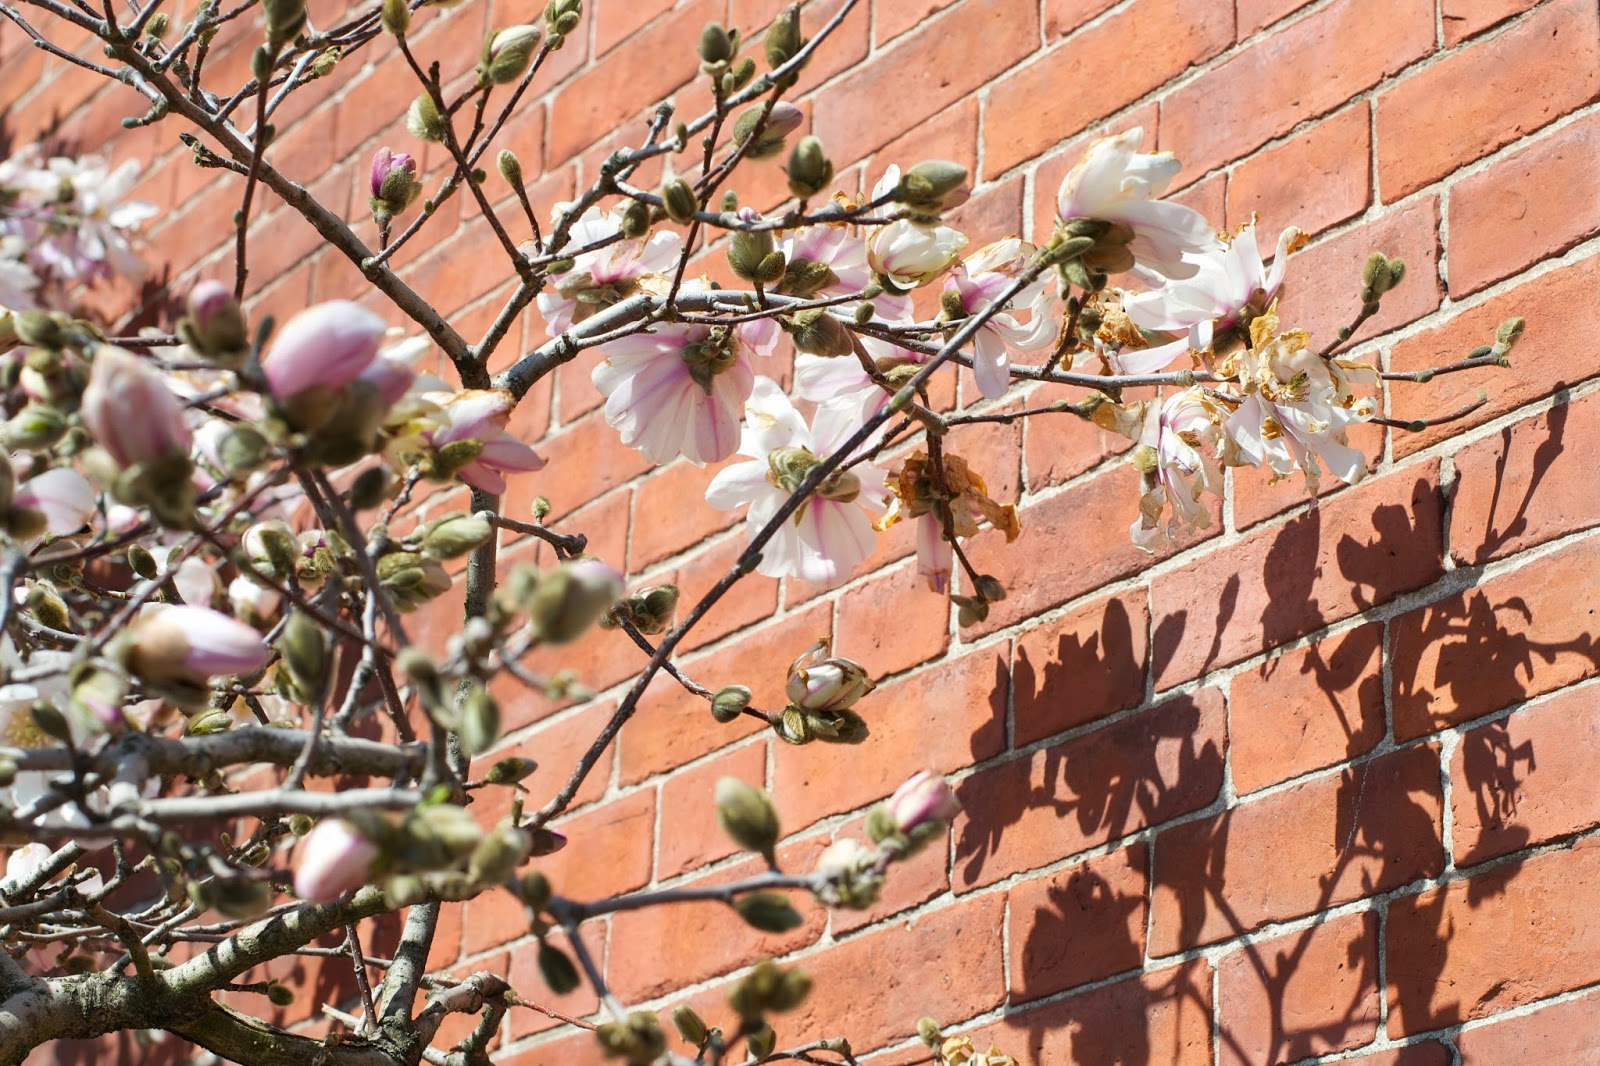 Magnolia tree blooming and casting shadows against a brick building down town.